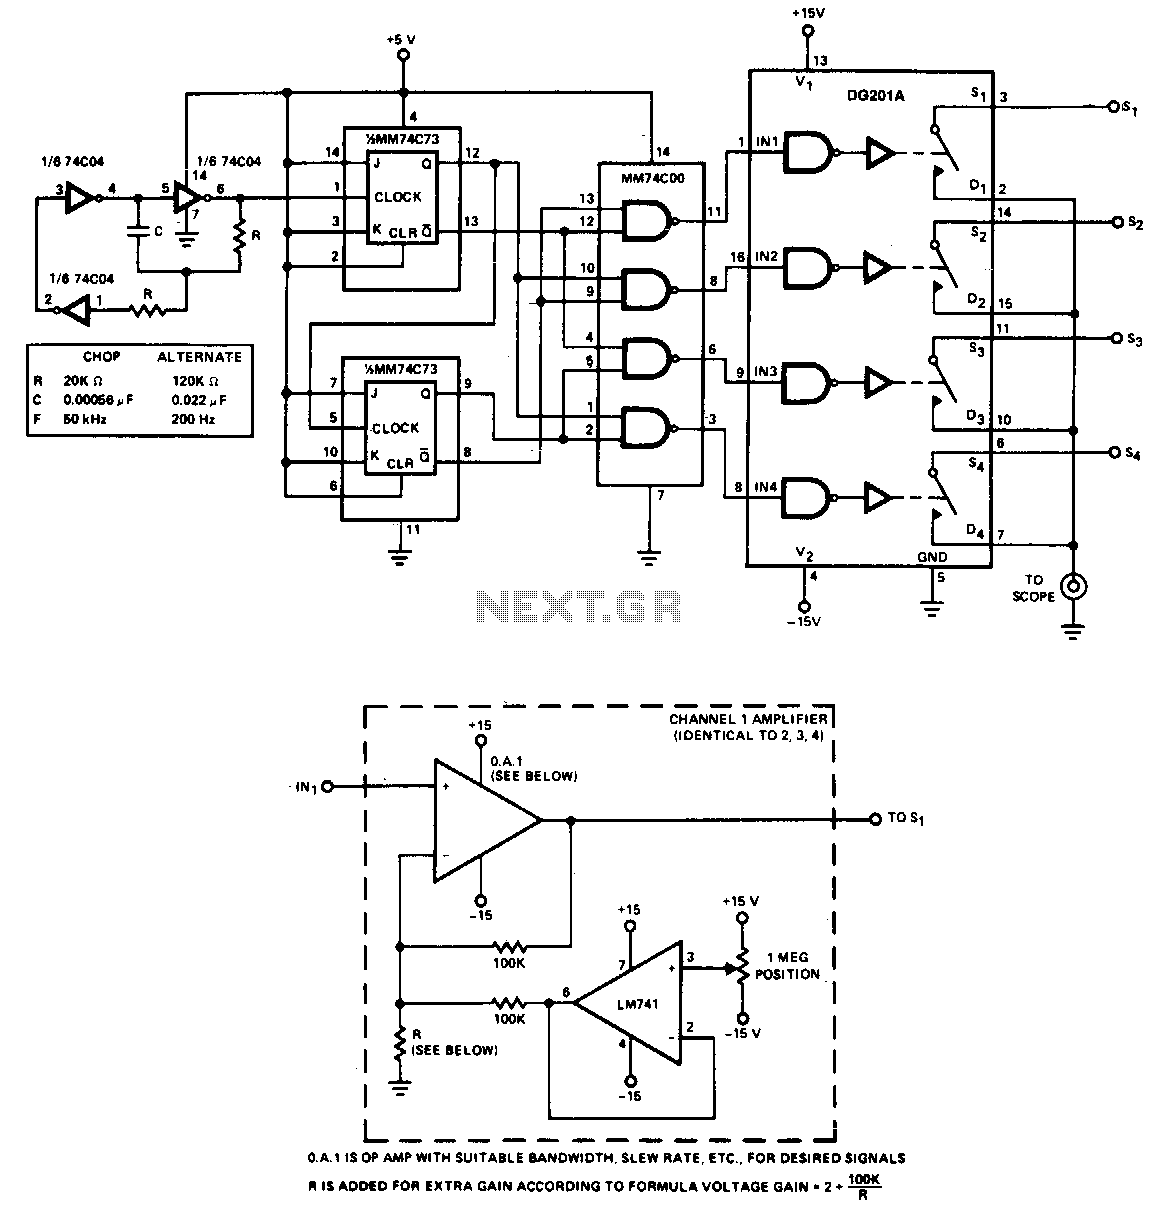 Popular Circuits Page 152 Bc548 Heat Sensor Circuit The Adapter Allows Four Inputs To Be Displayed Simultaoeously On A Single Trace Scope For Low Frequency Signals Less Than 500hz Is Used In